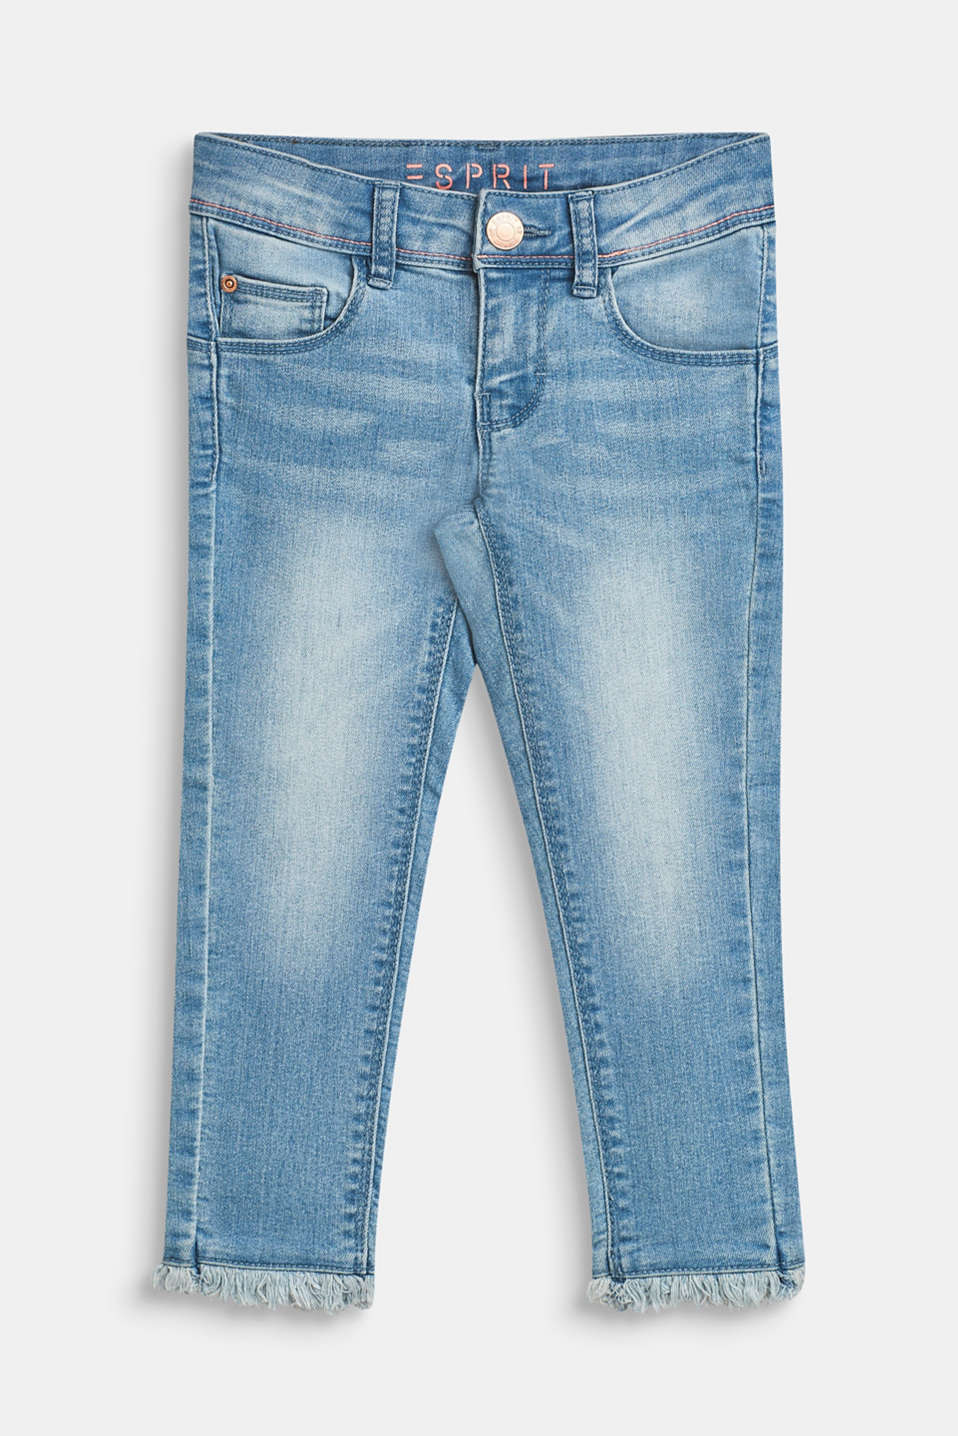 Esprit - Jeans met veel stretch en garment-washed effect